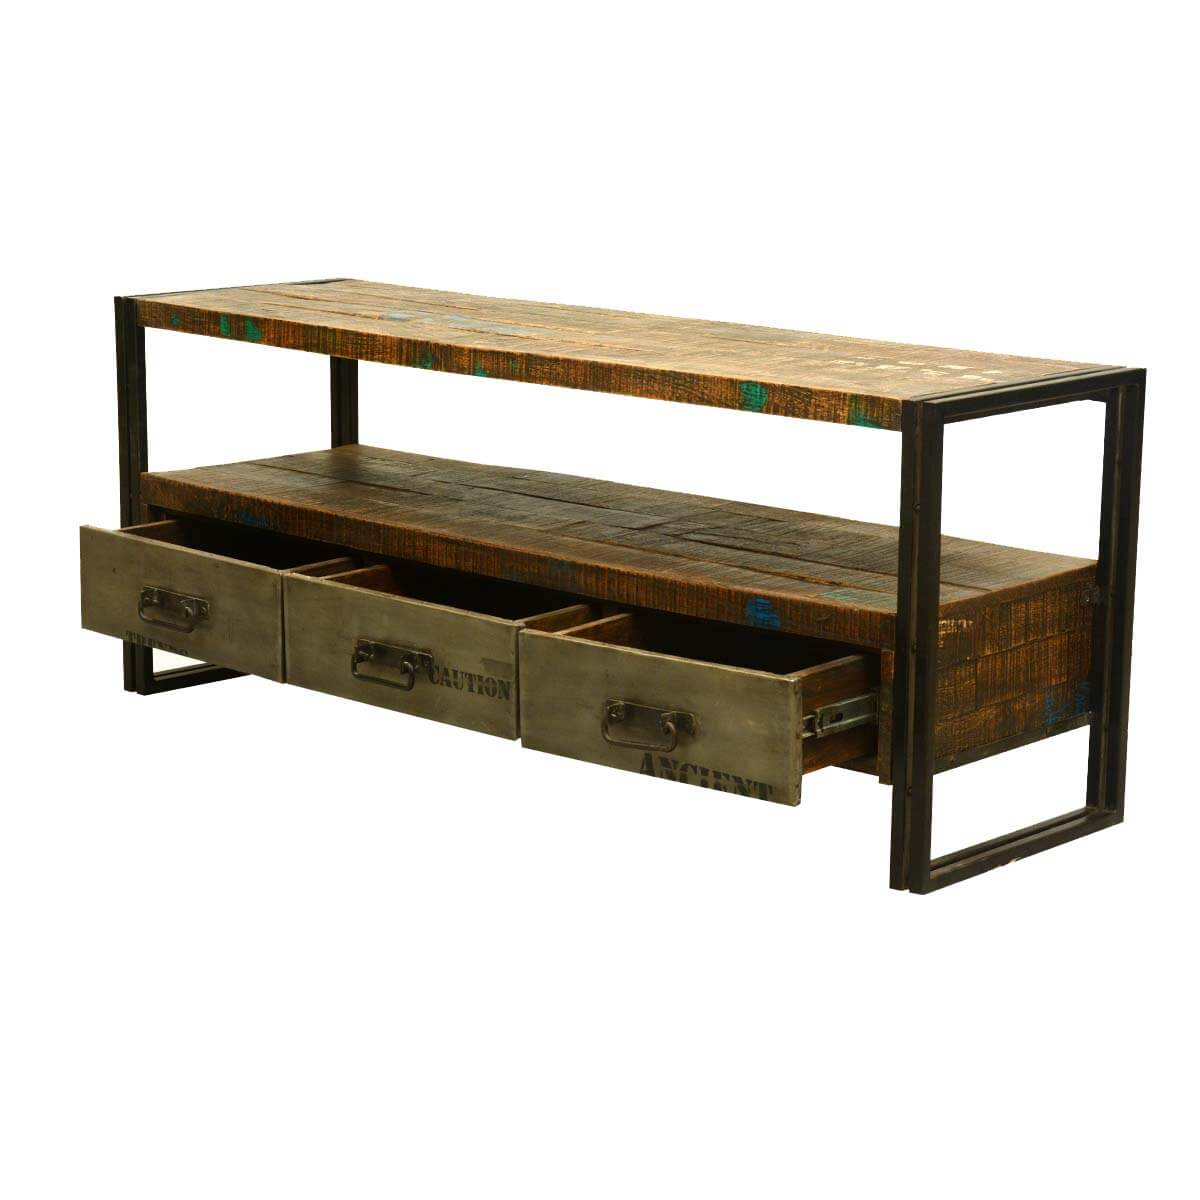 Stylish Rustic Media Console : ... Artisan Collection Modern Rustic Reclaimed Wood & Iron Media Console